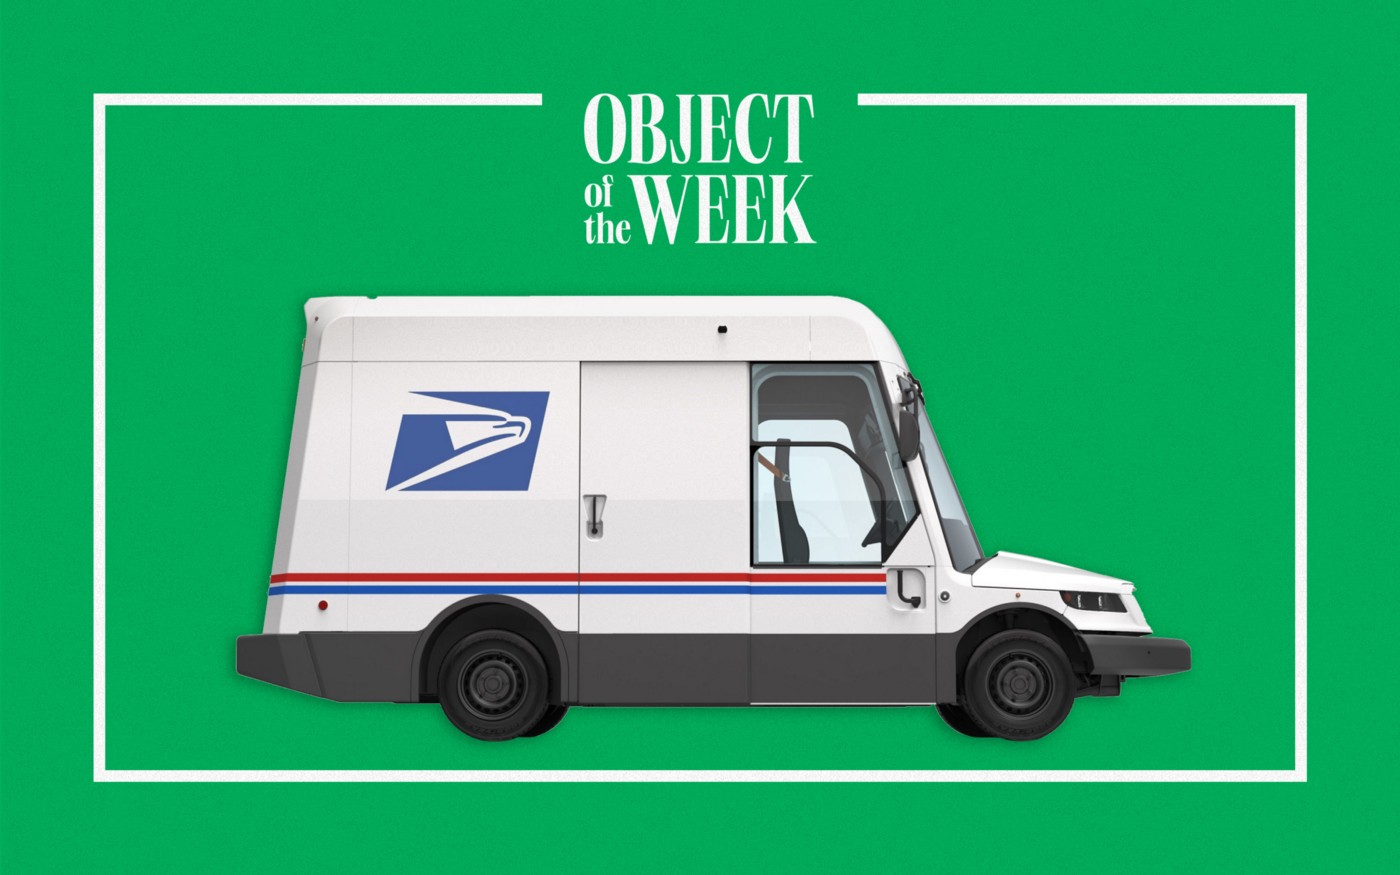 The new US Postal Service truck